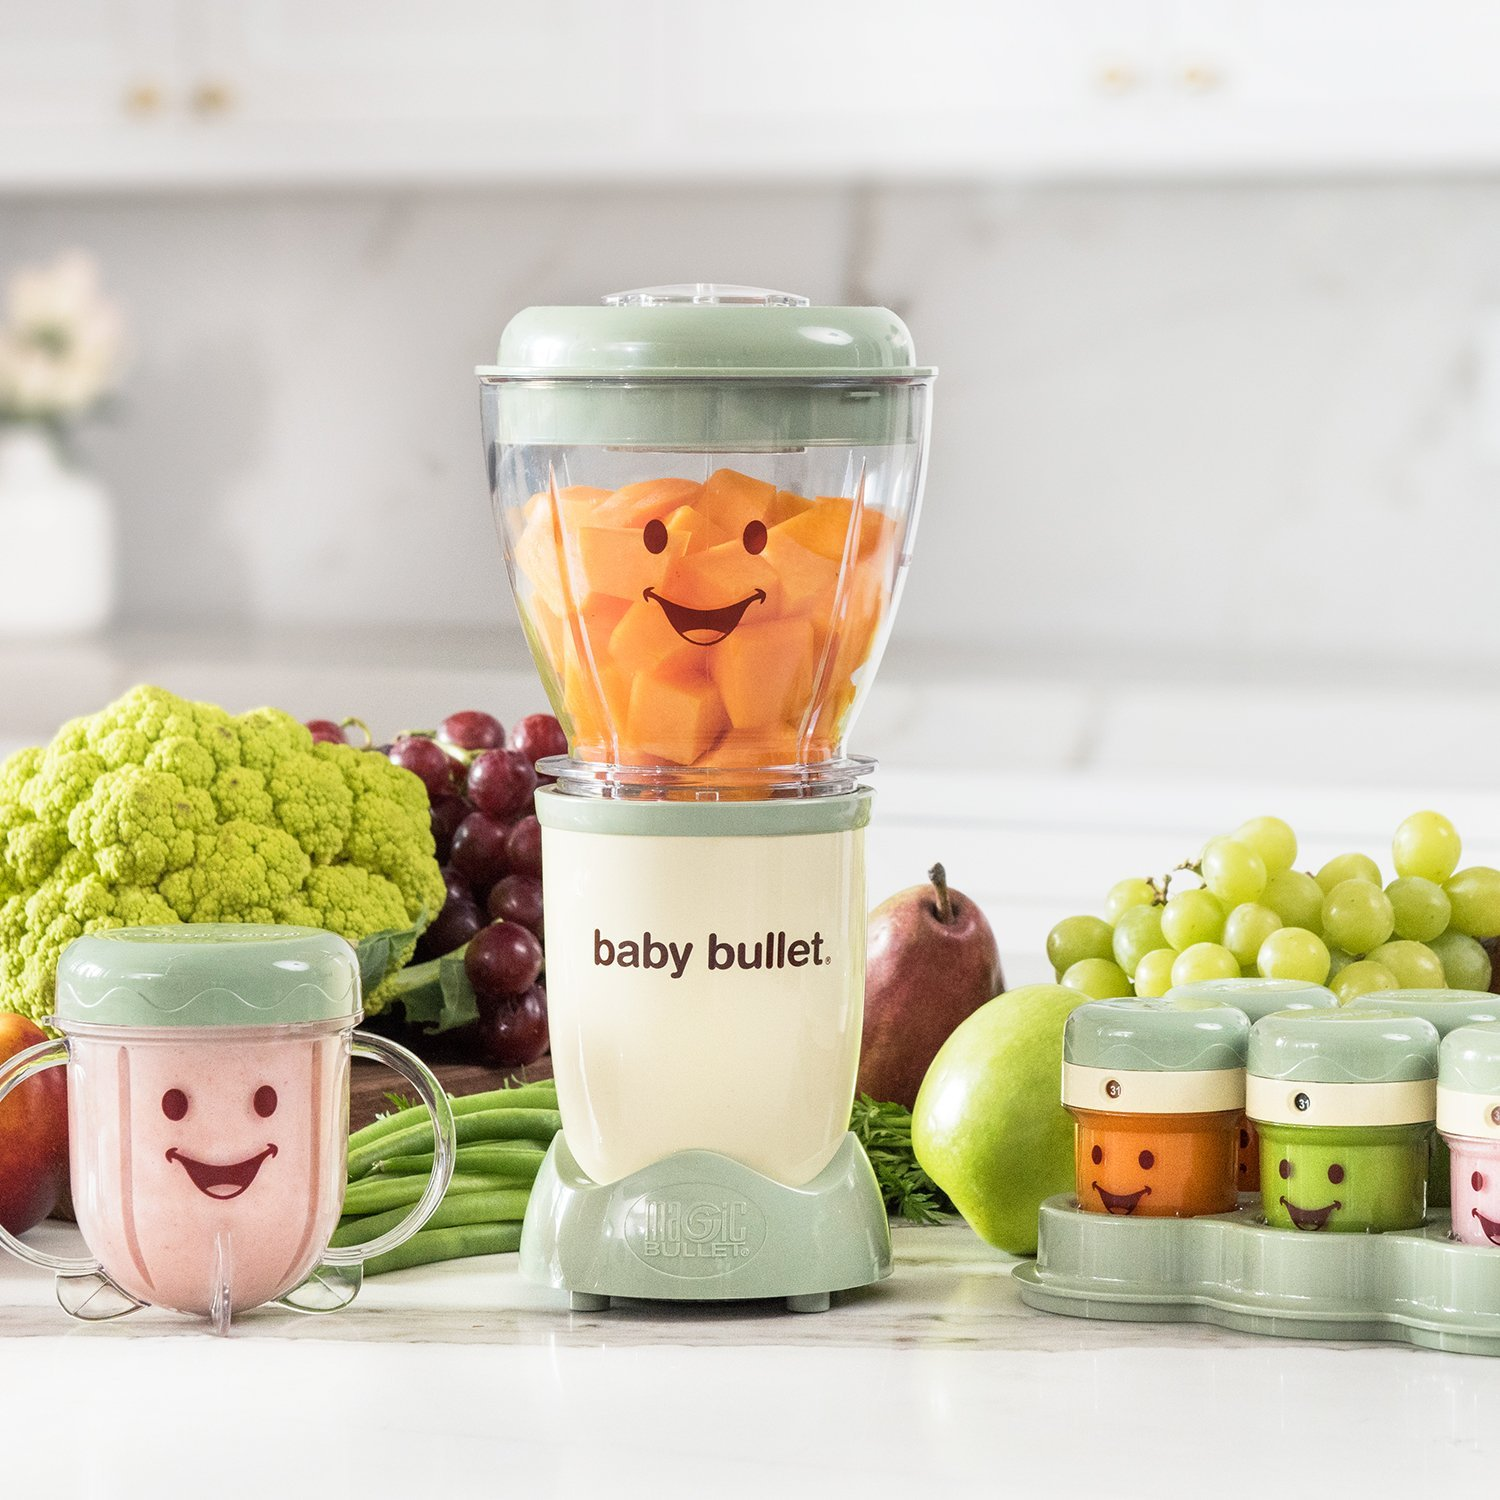 Baby bullet products